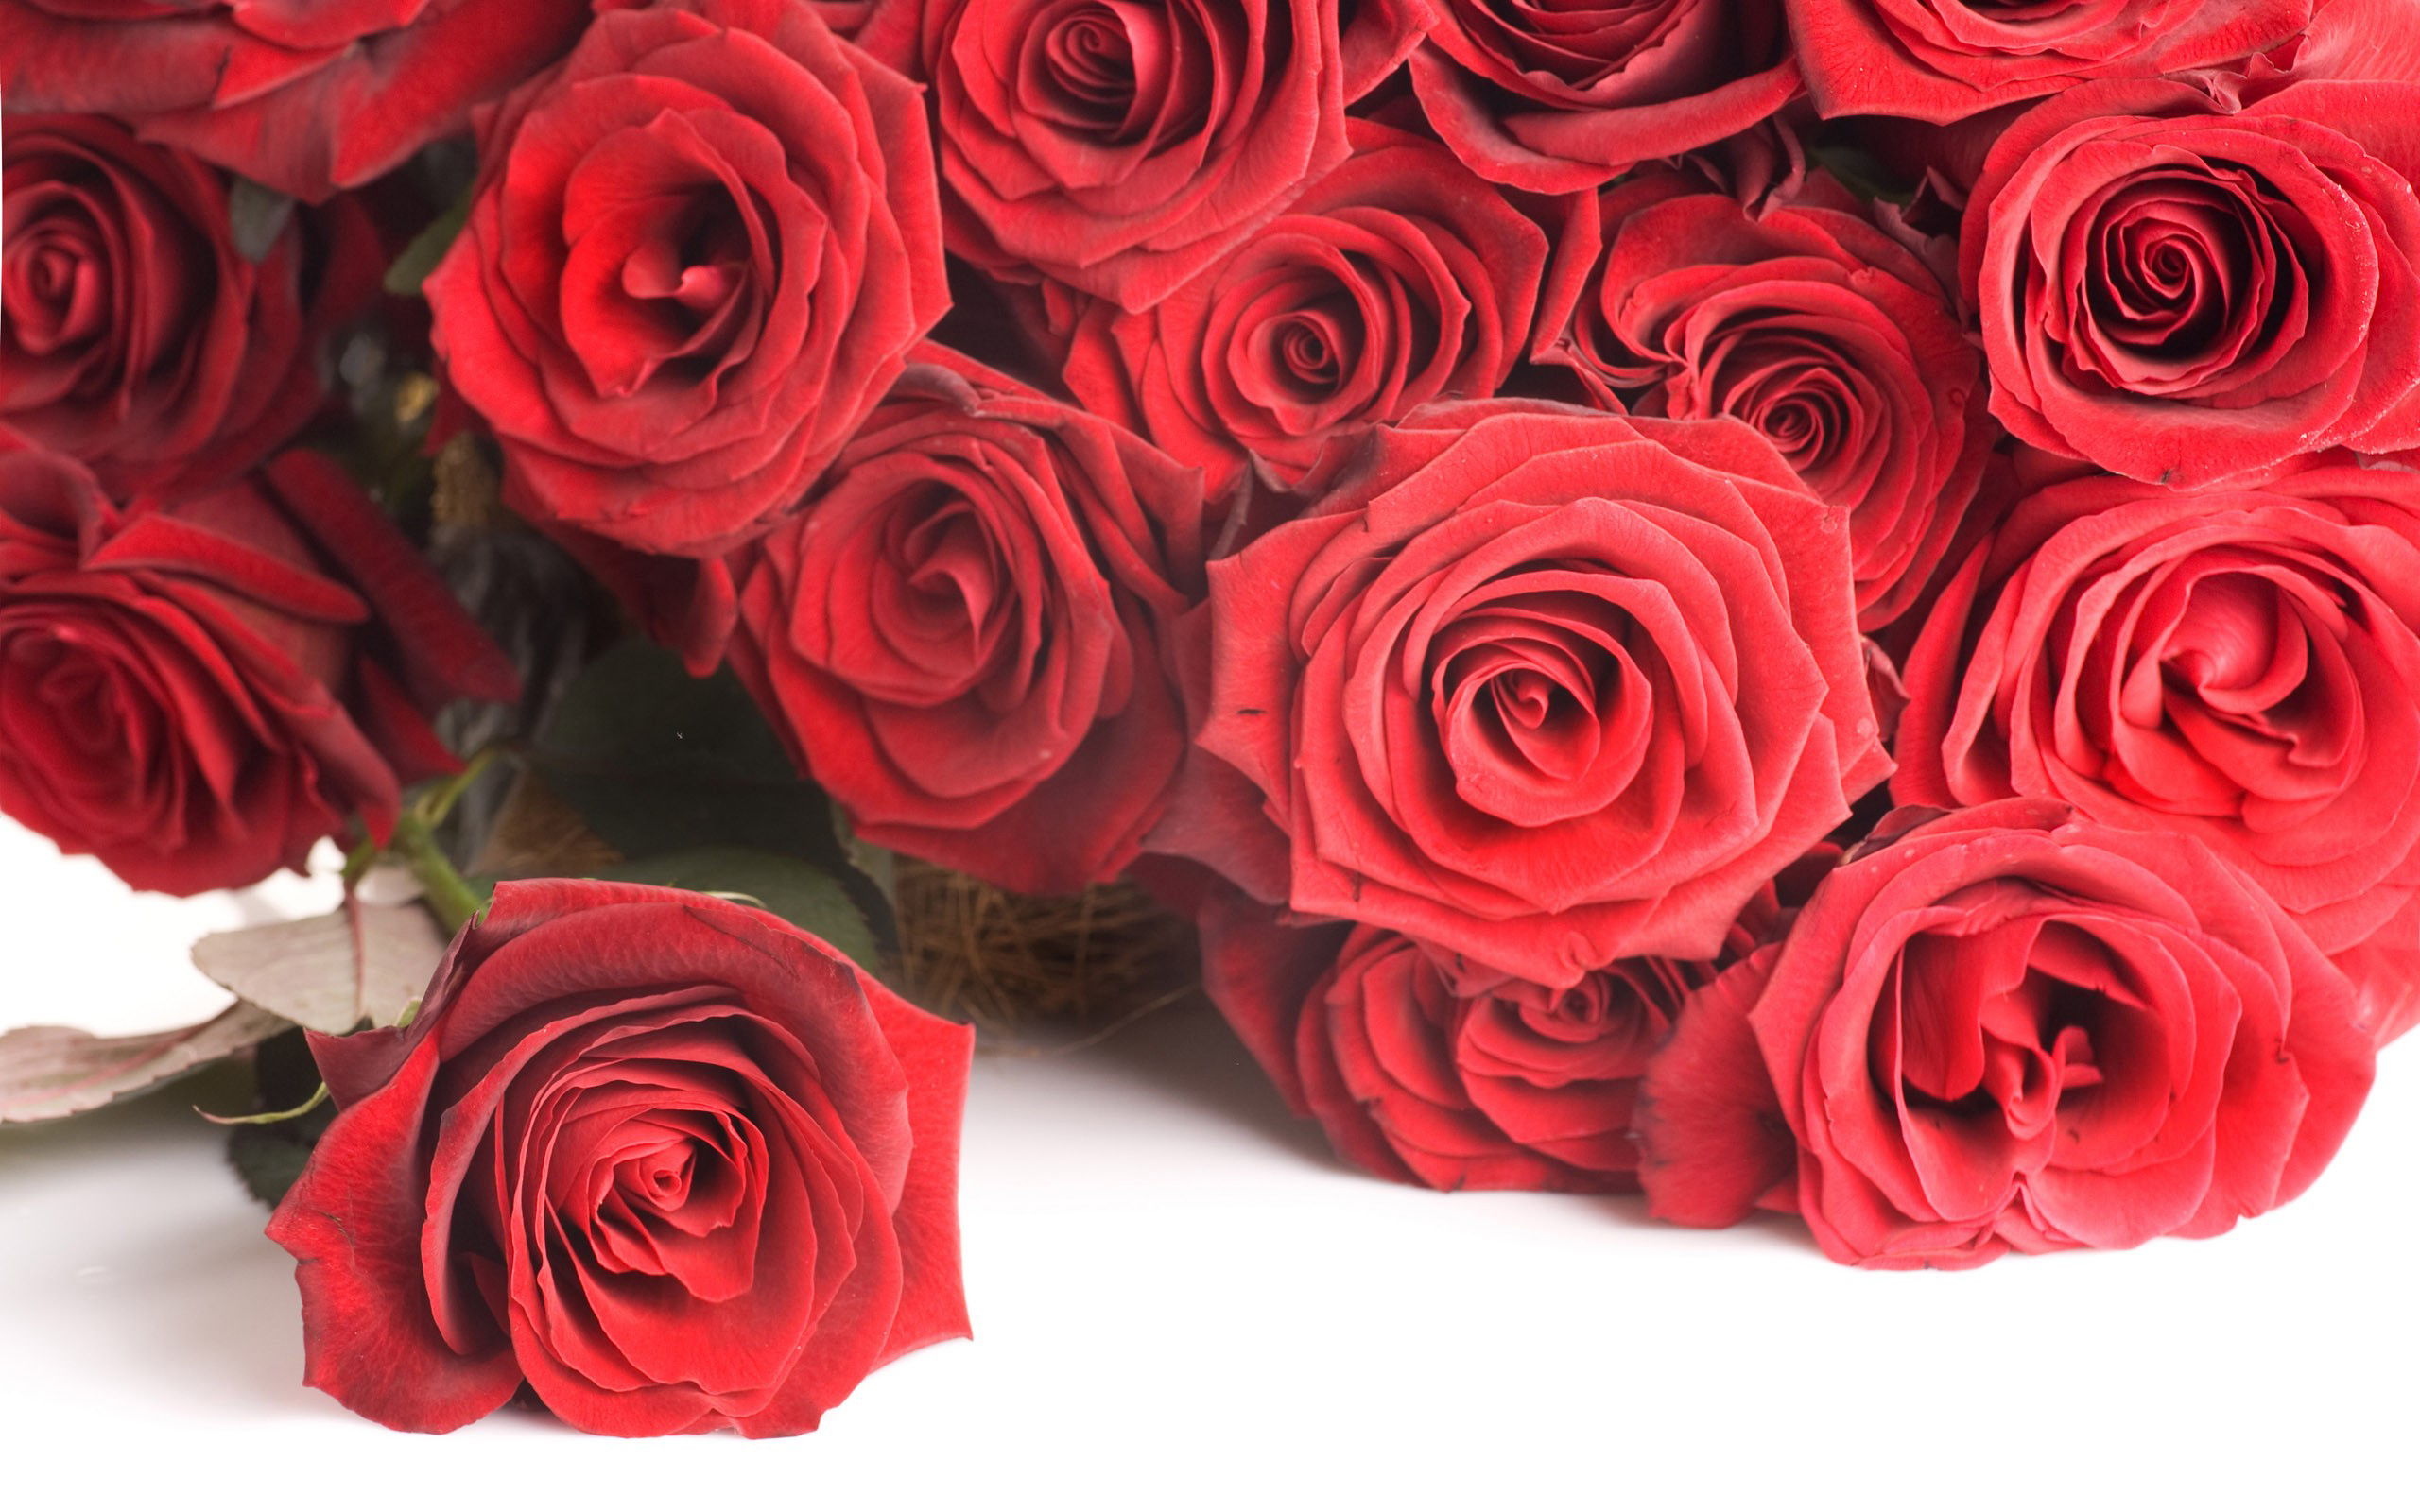 red rose bouquet wallpaper for love